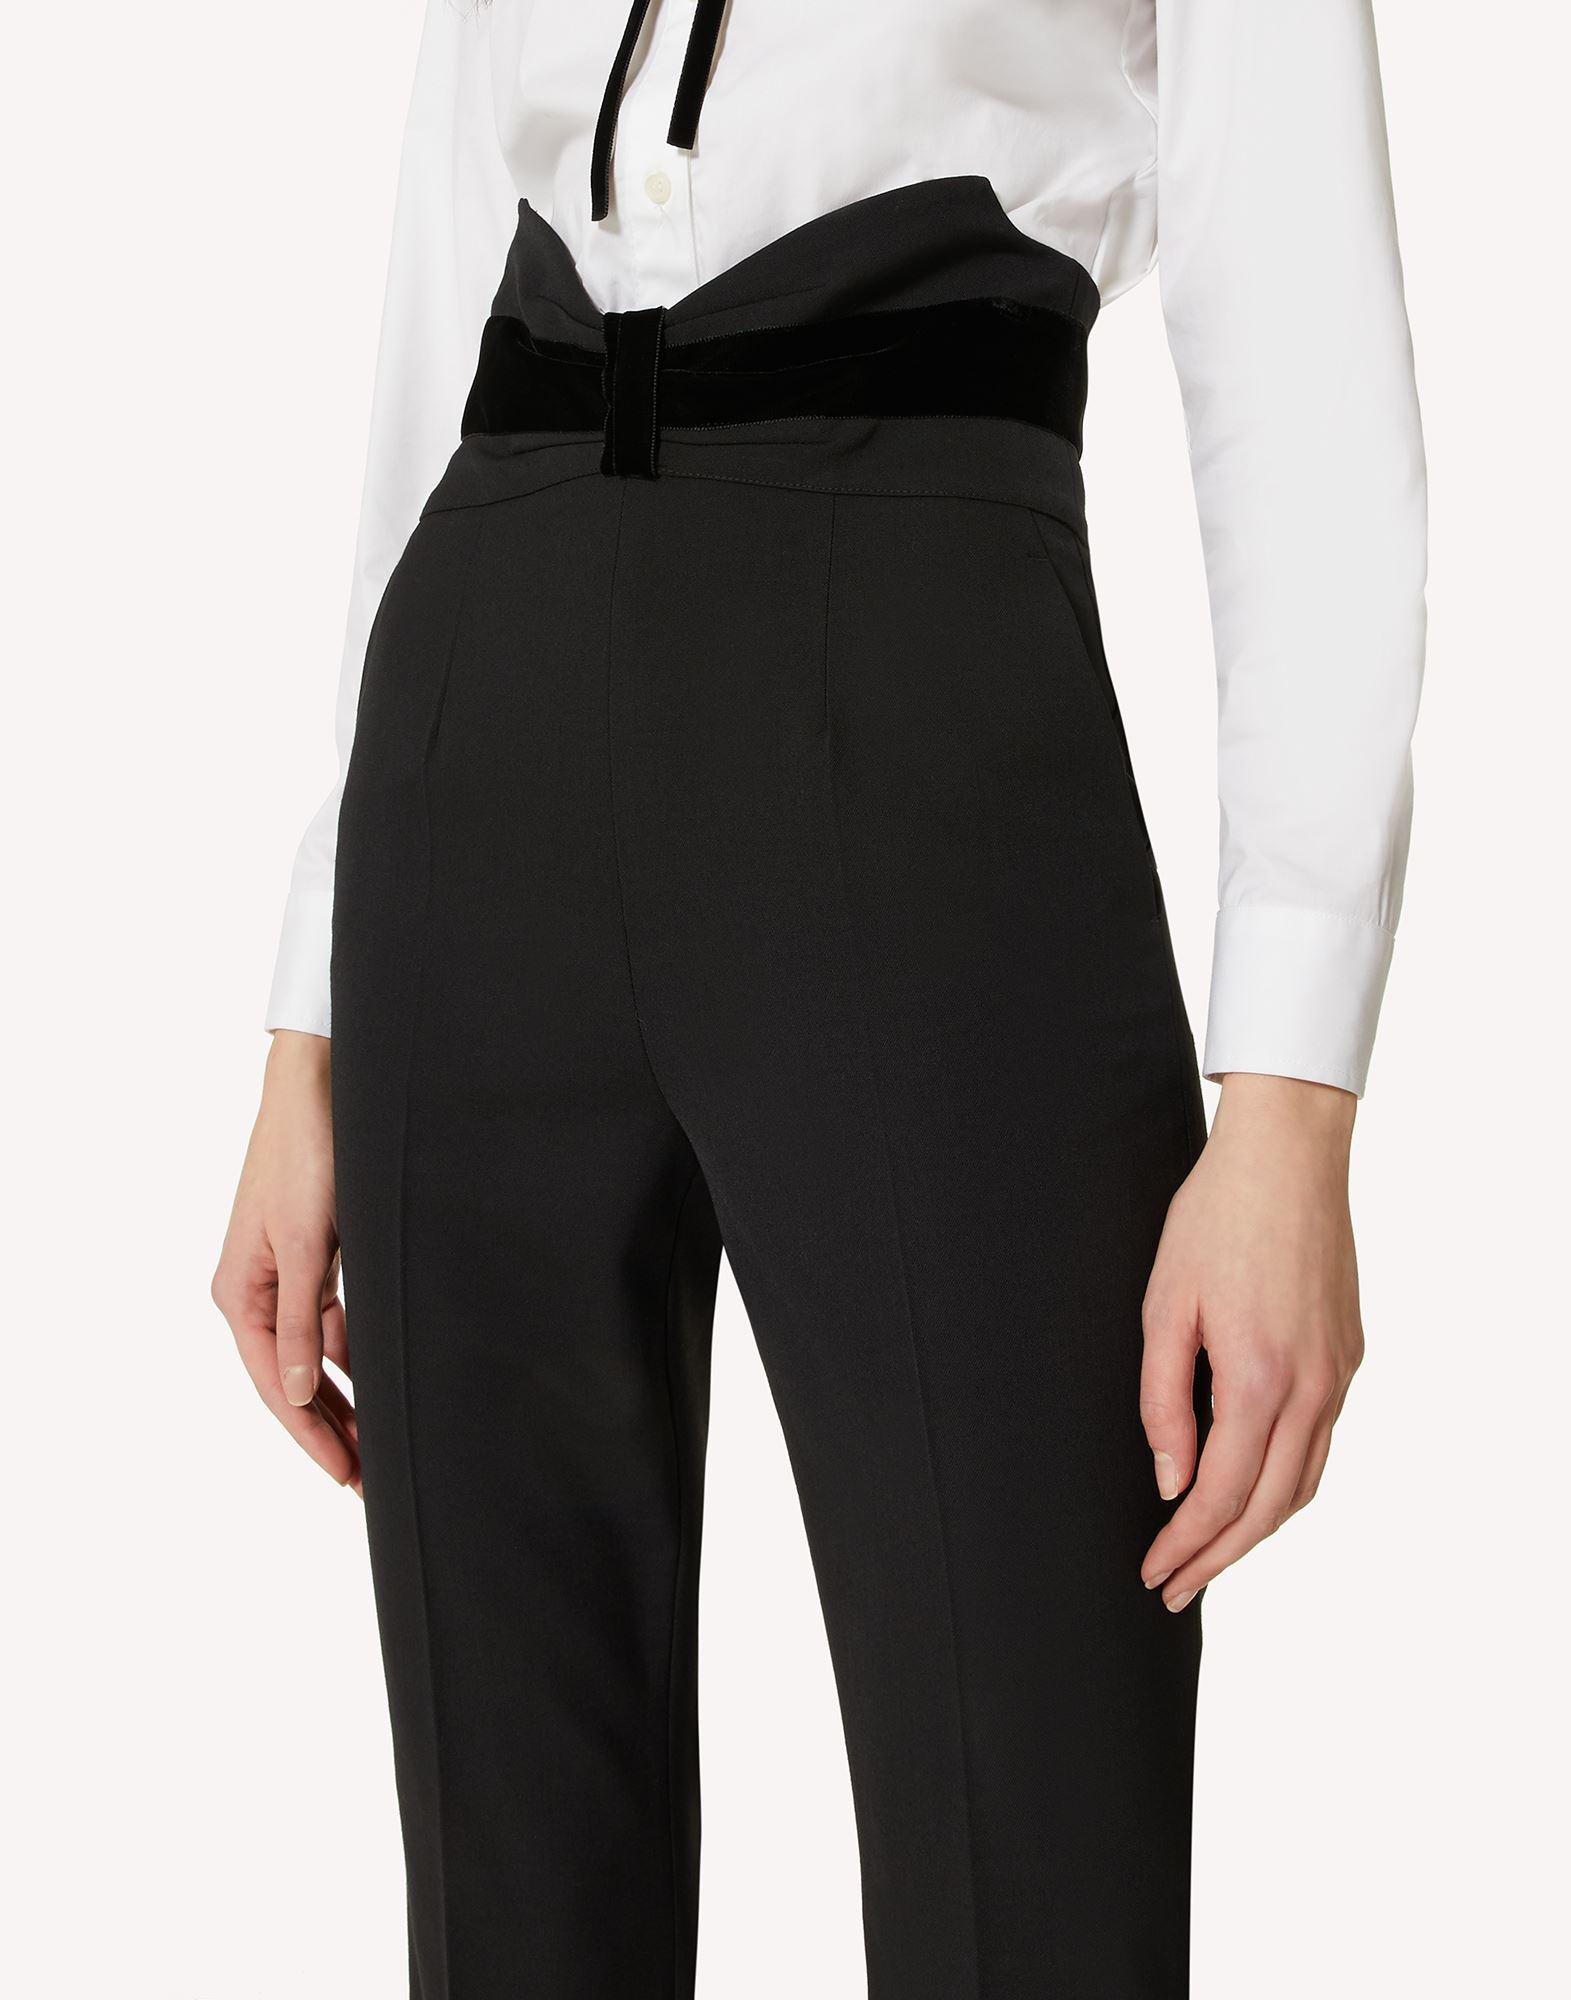 TUXEDO BOW DETAIL WOOL STRETCH REPS PANTS 3